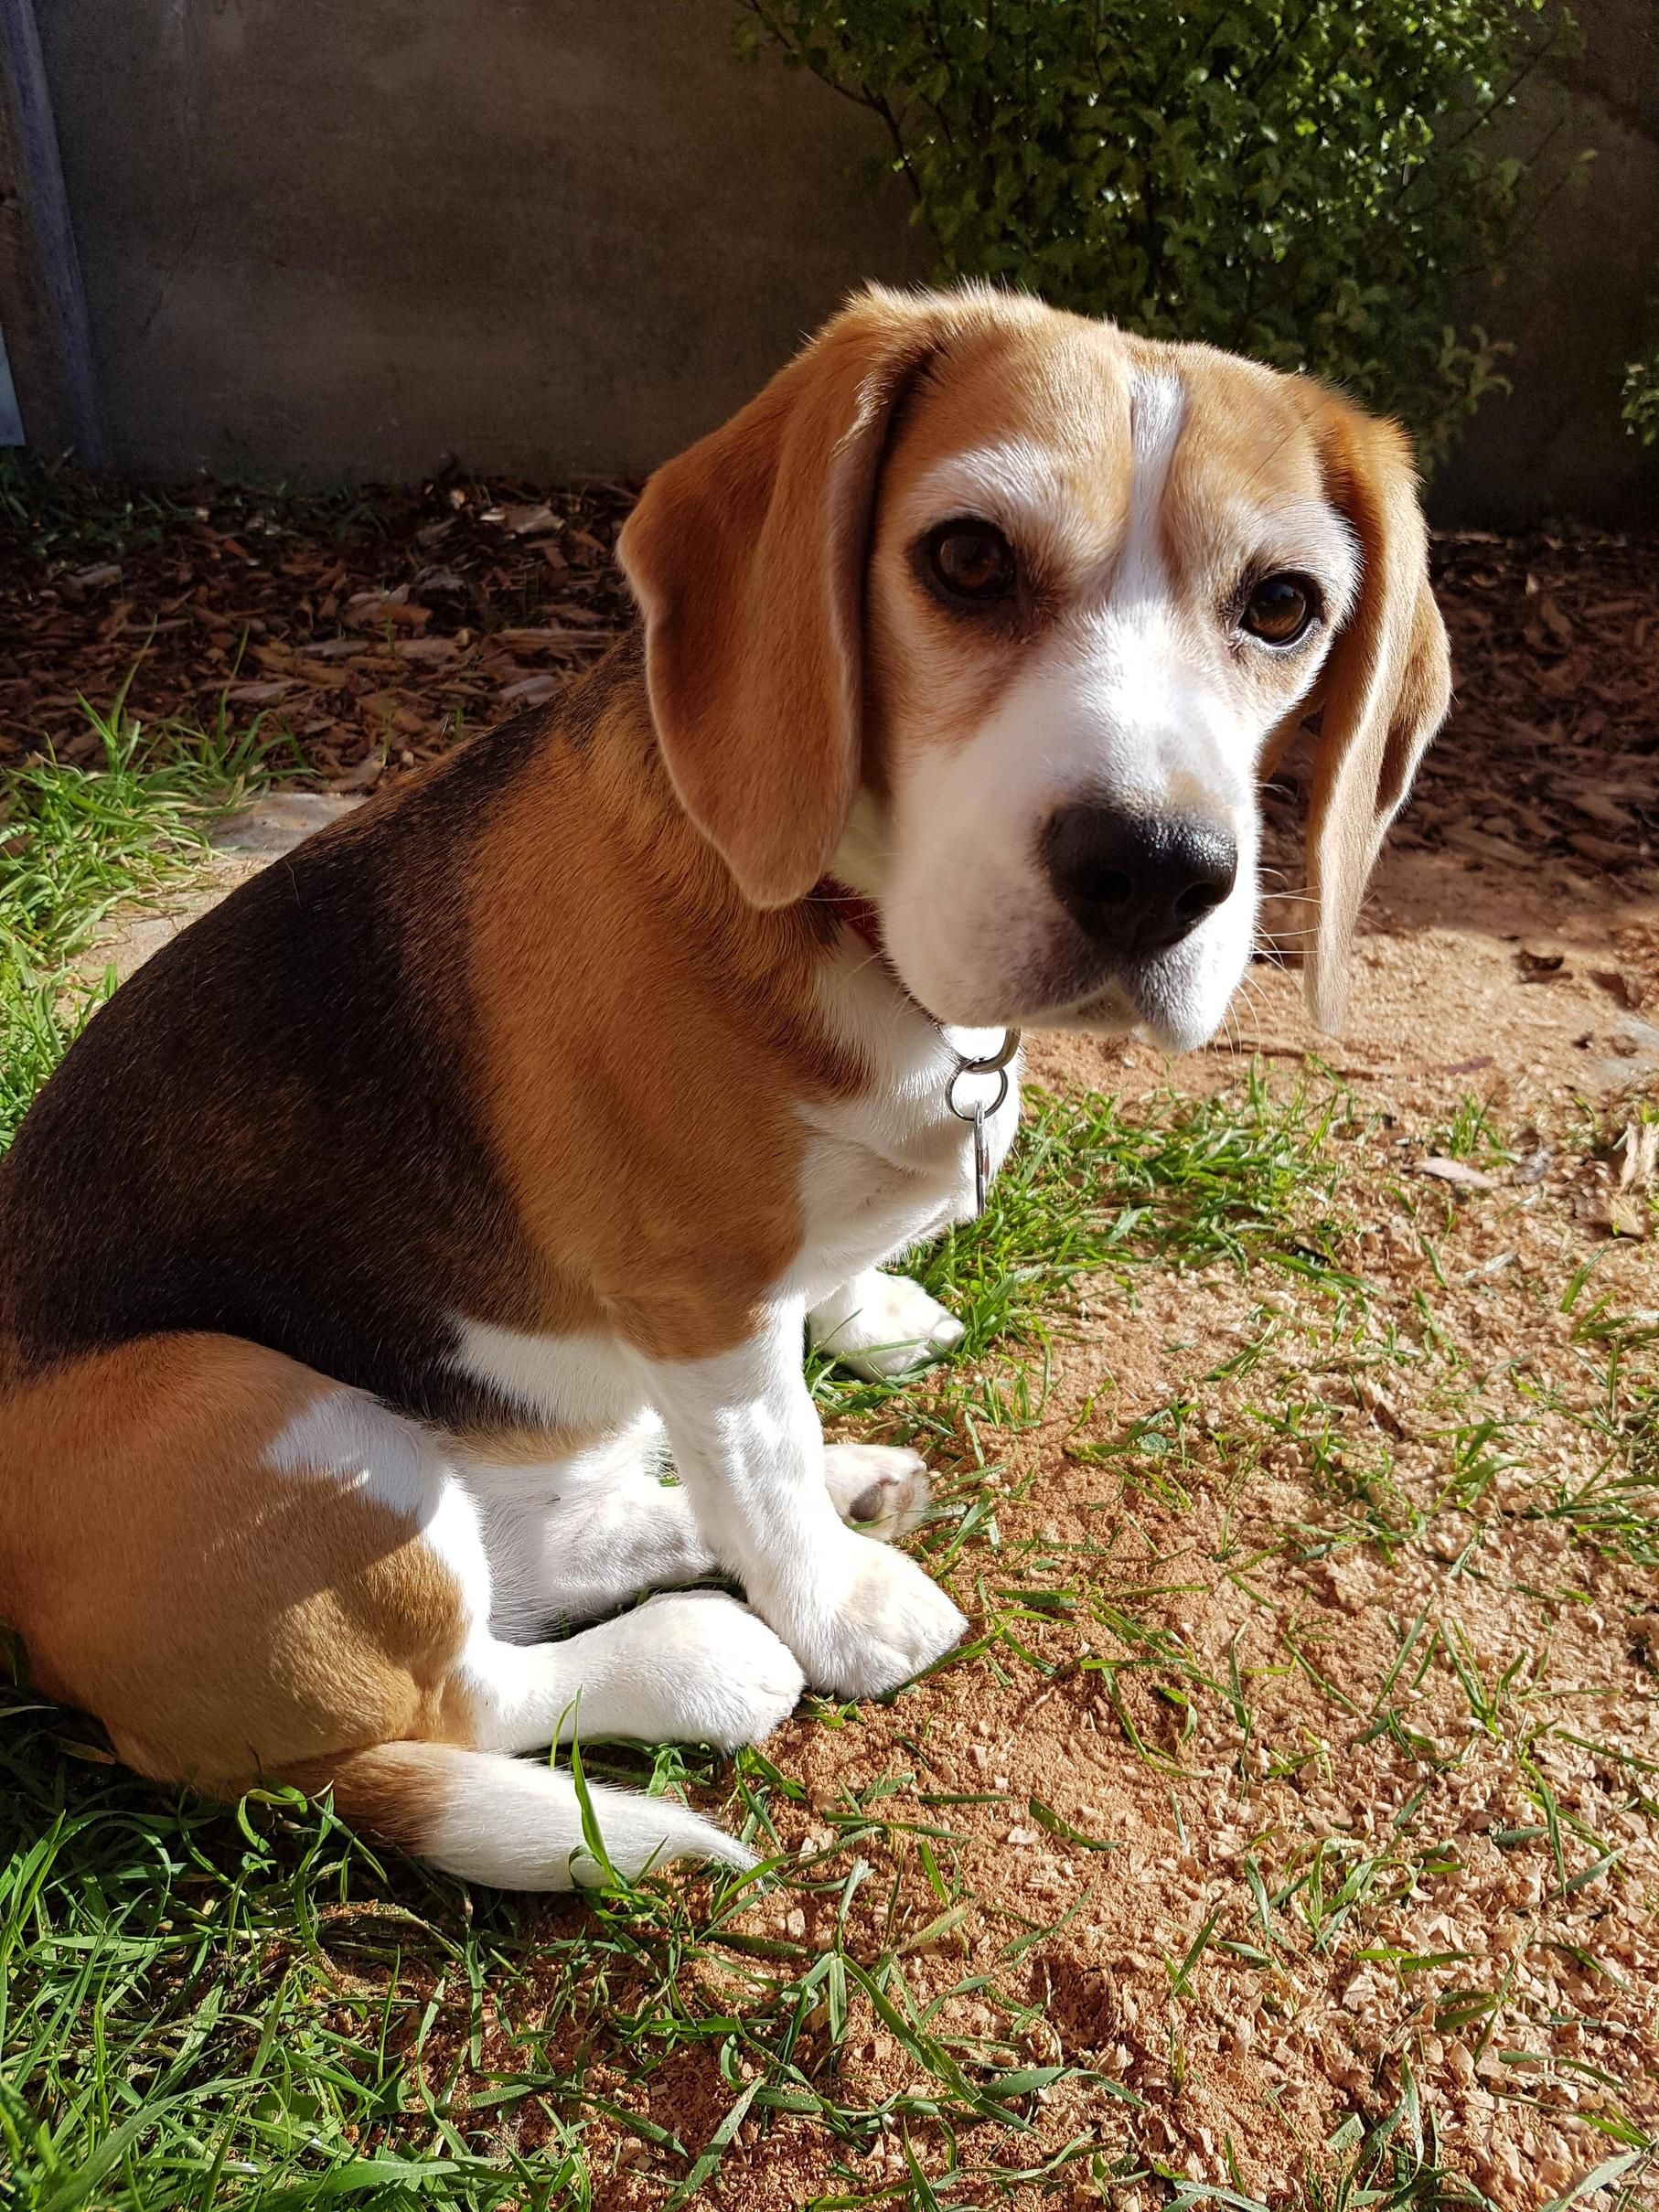 Leave Me Alone Can T You See I M Ready To Dig Beagle Dogs